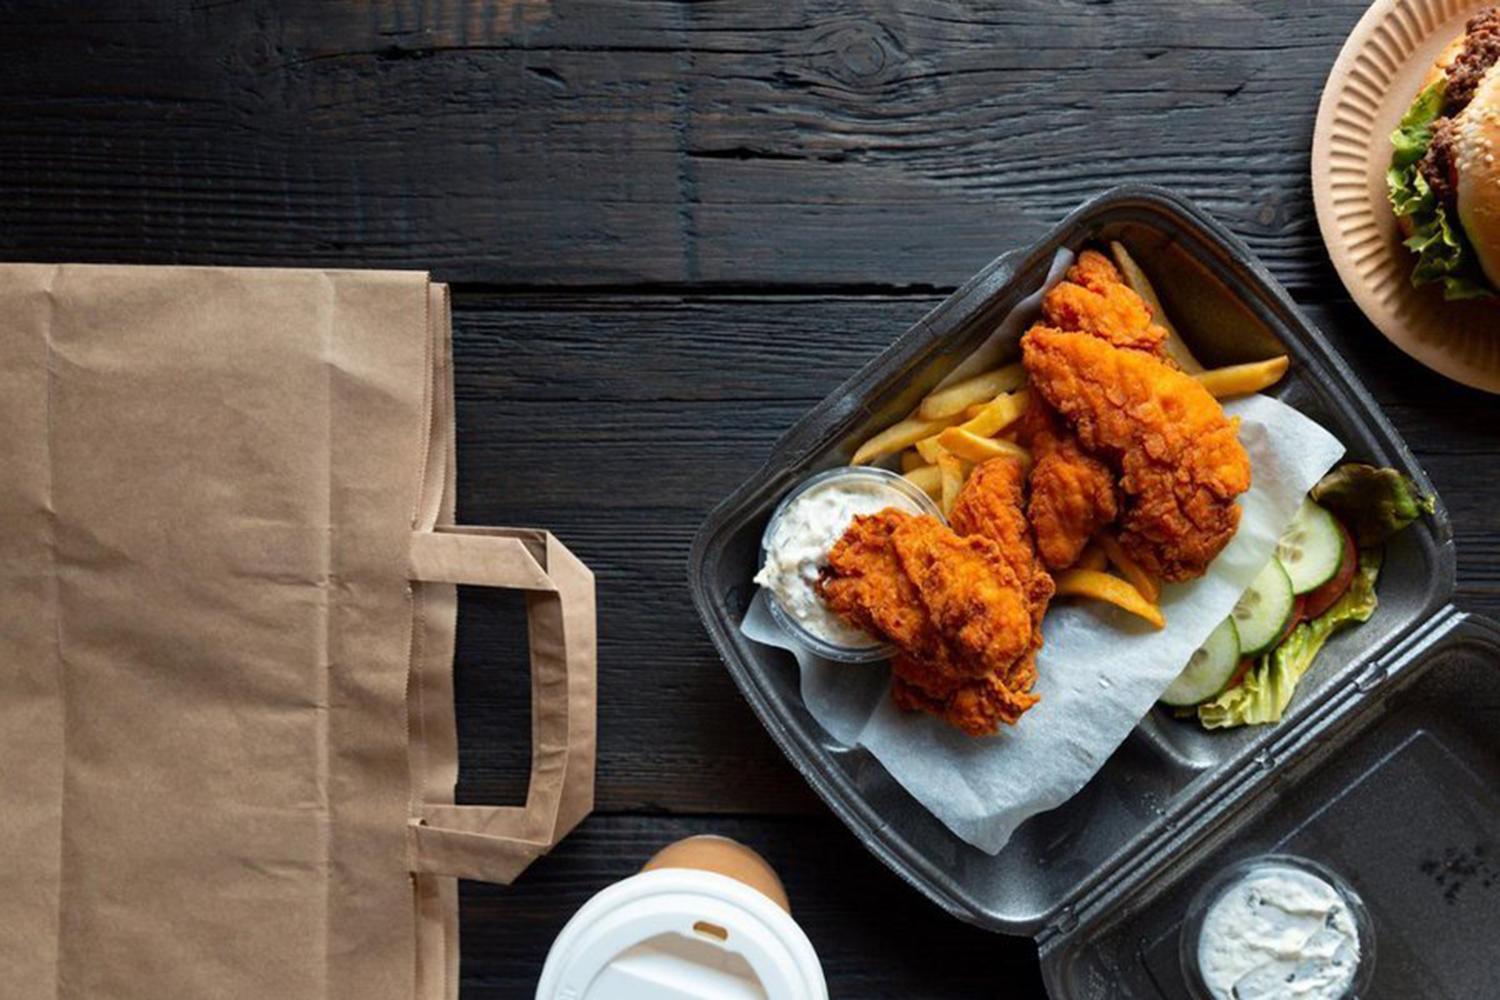 Rakuten launches takeout services in the US and Japan to support local restaurants